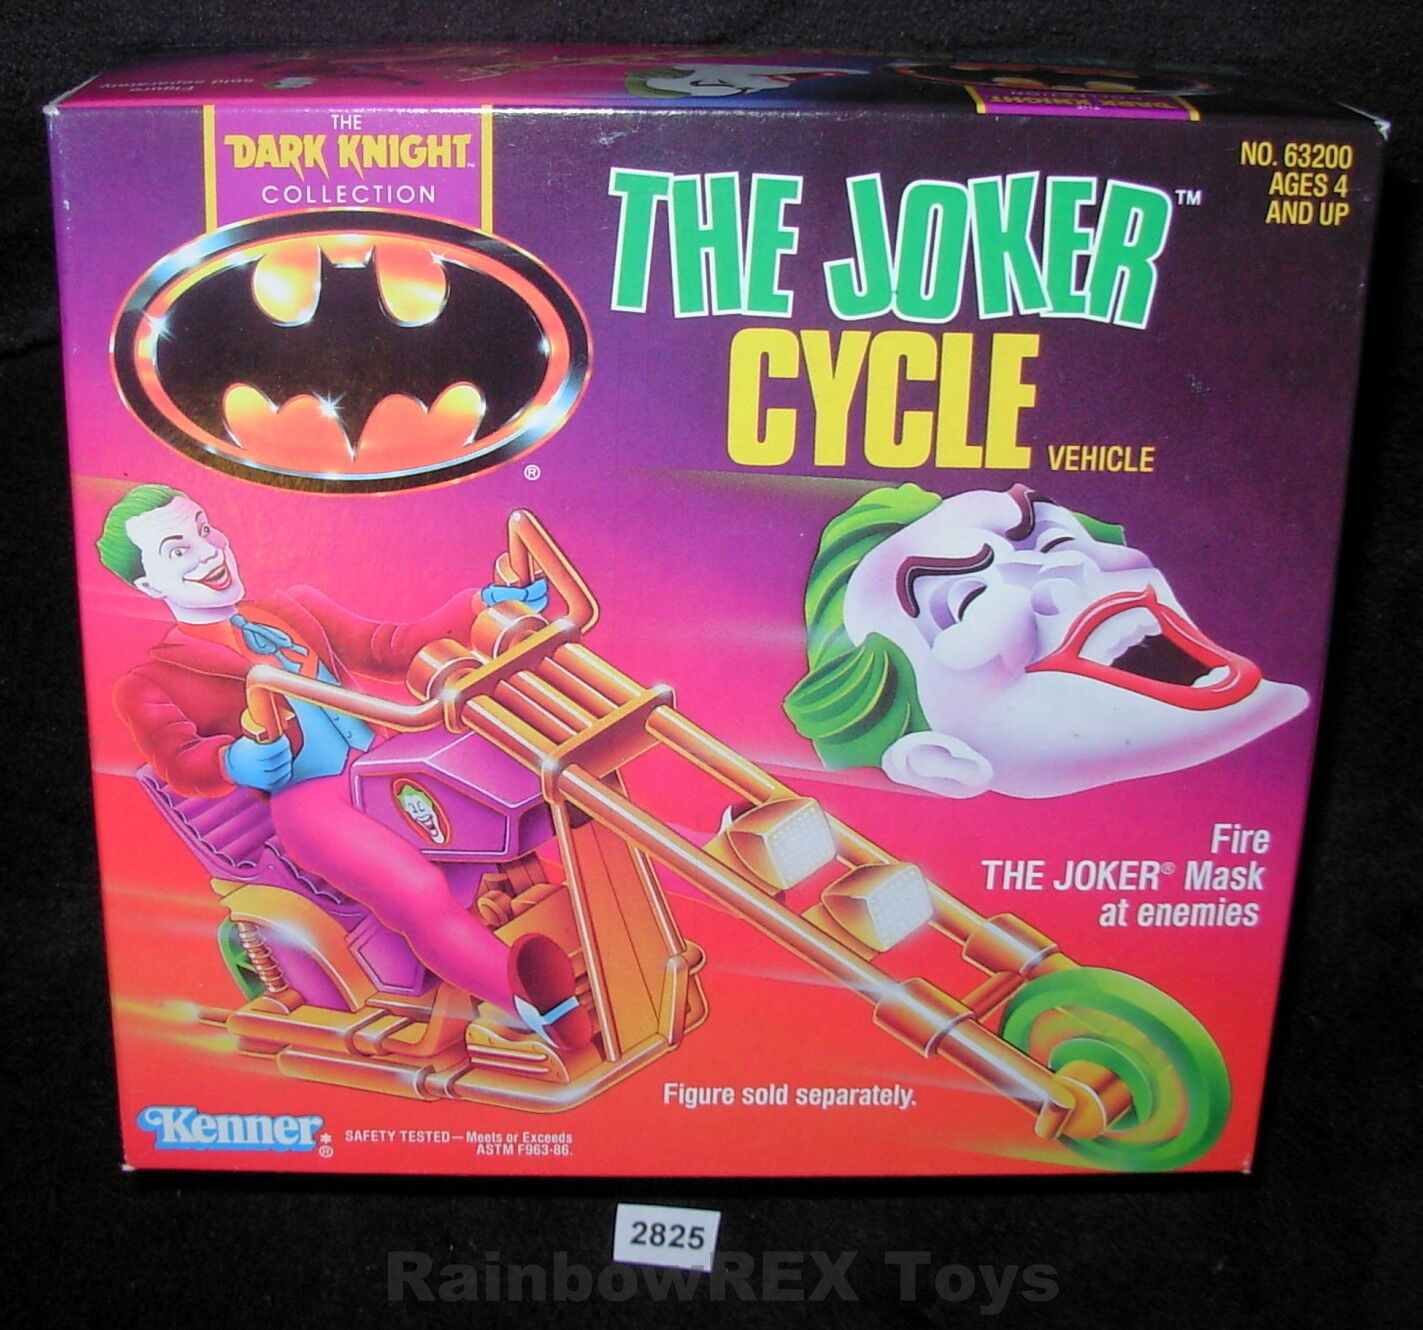 THE JOKER CYCLE VEHICLE 1990 The Dark Knight Collection Kenner MINT IN BOX